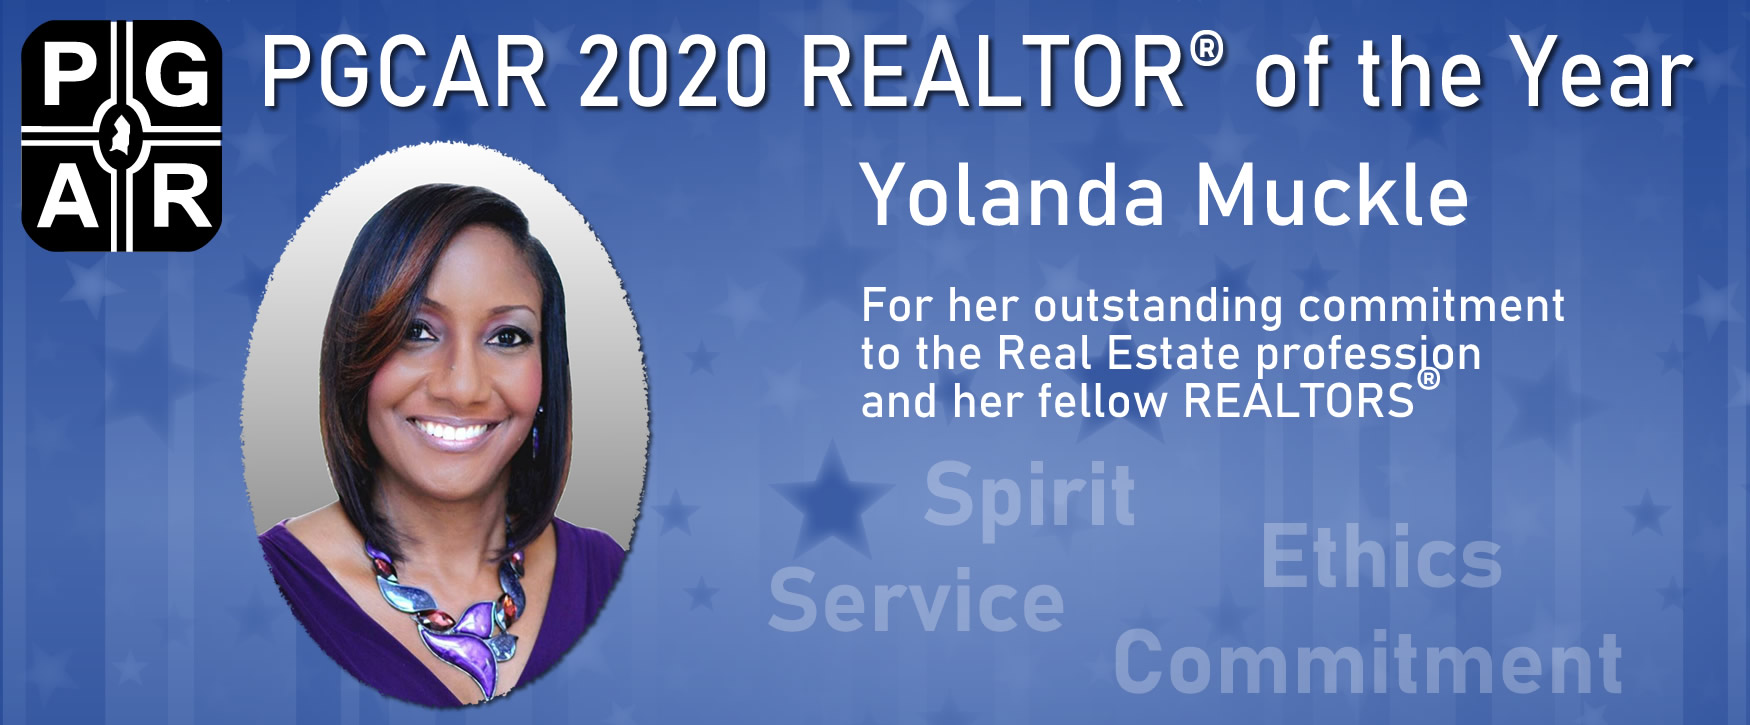 Congratulations to Yolanda Muckle, PGCAR's 2020 REALTOR(r) of the Year